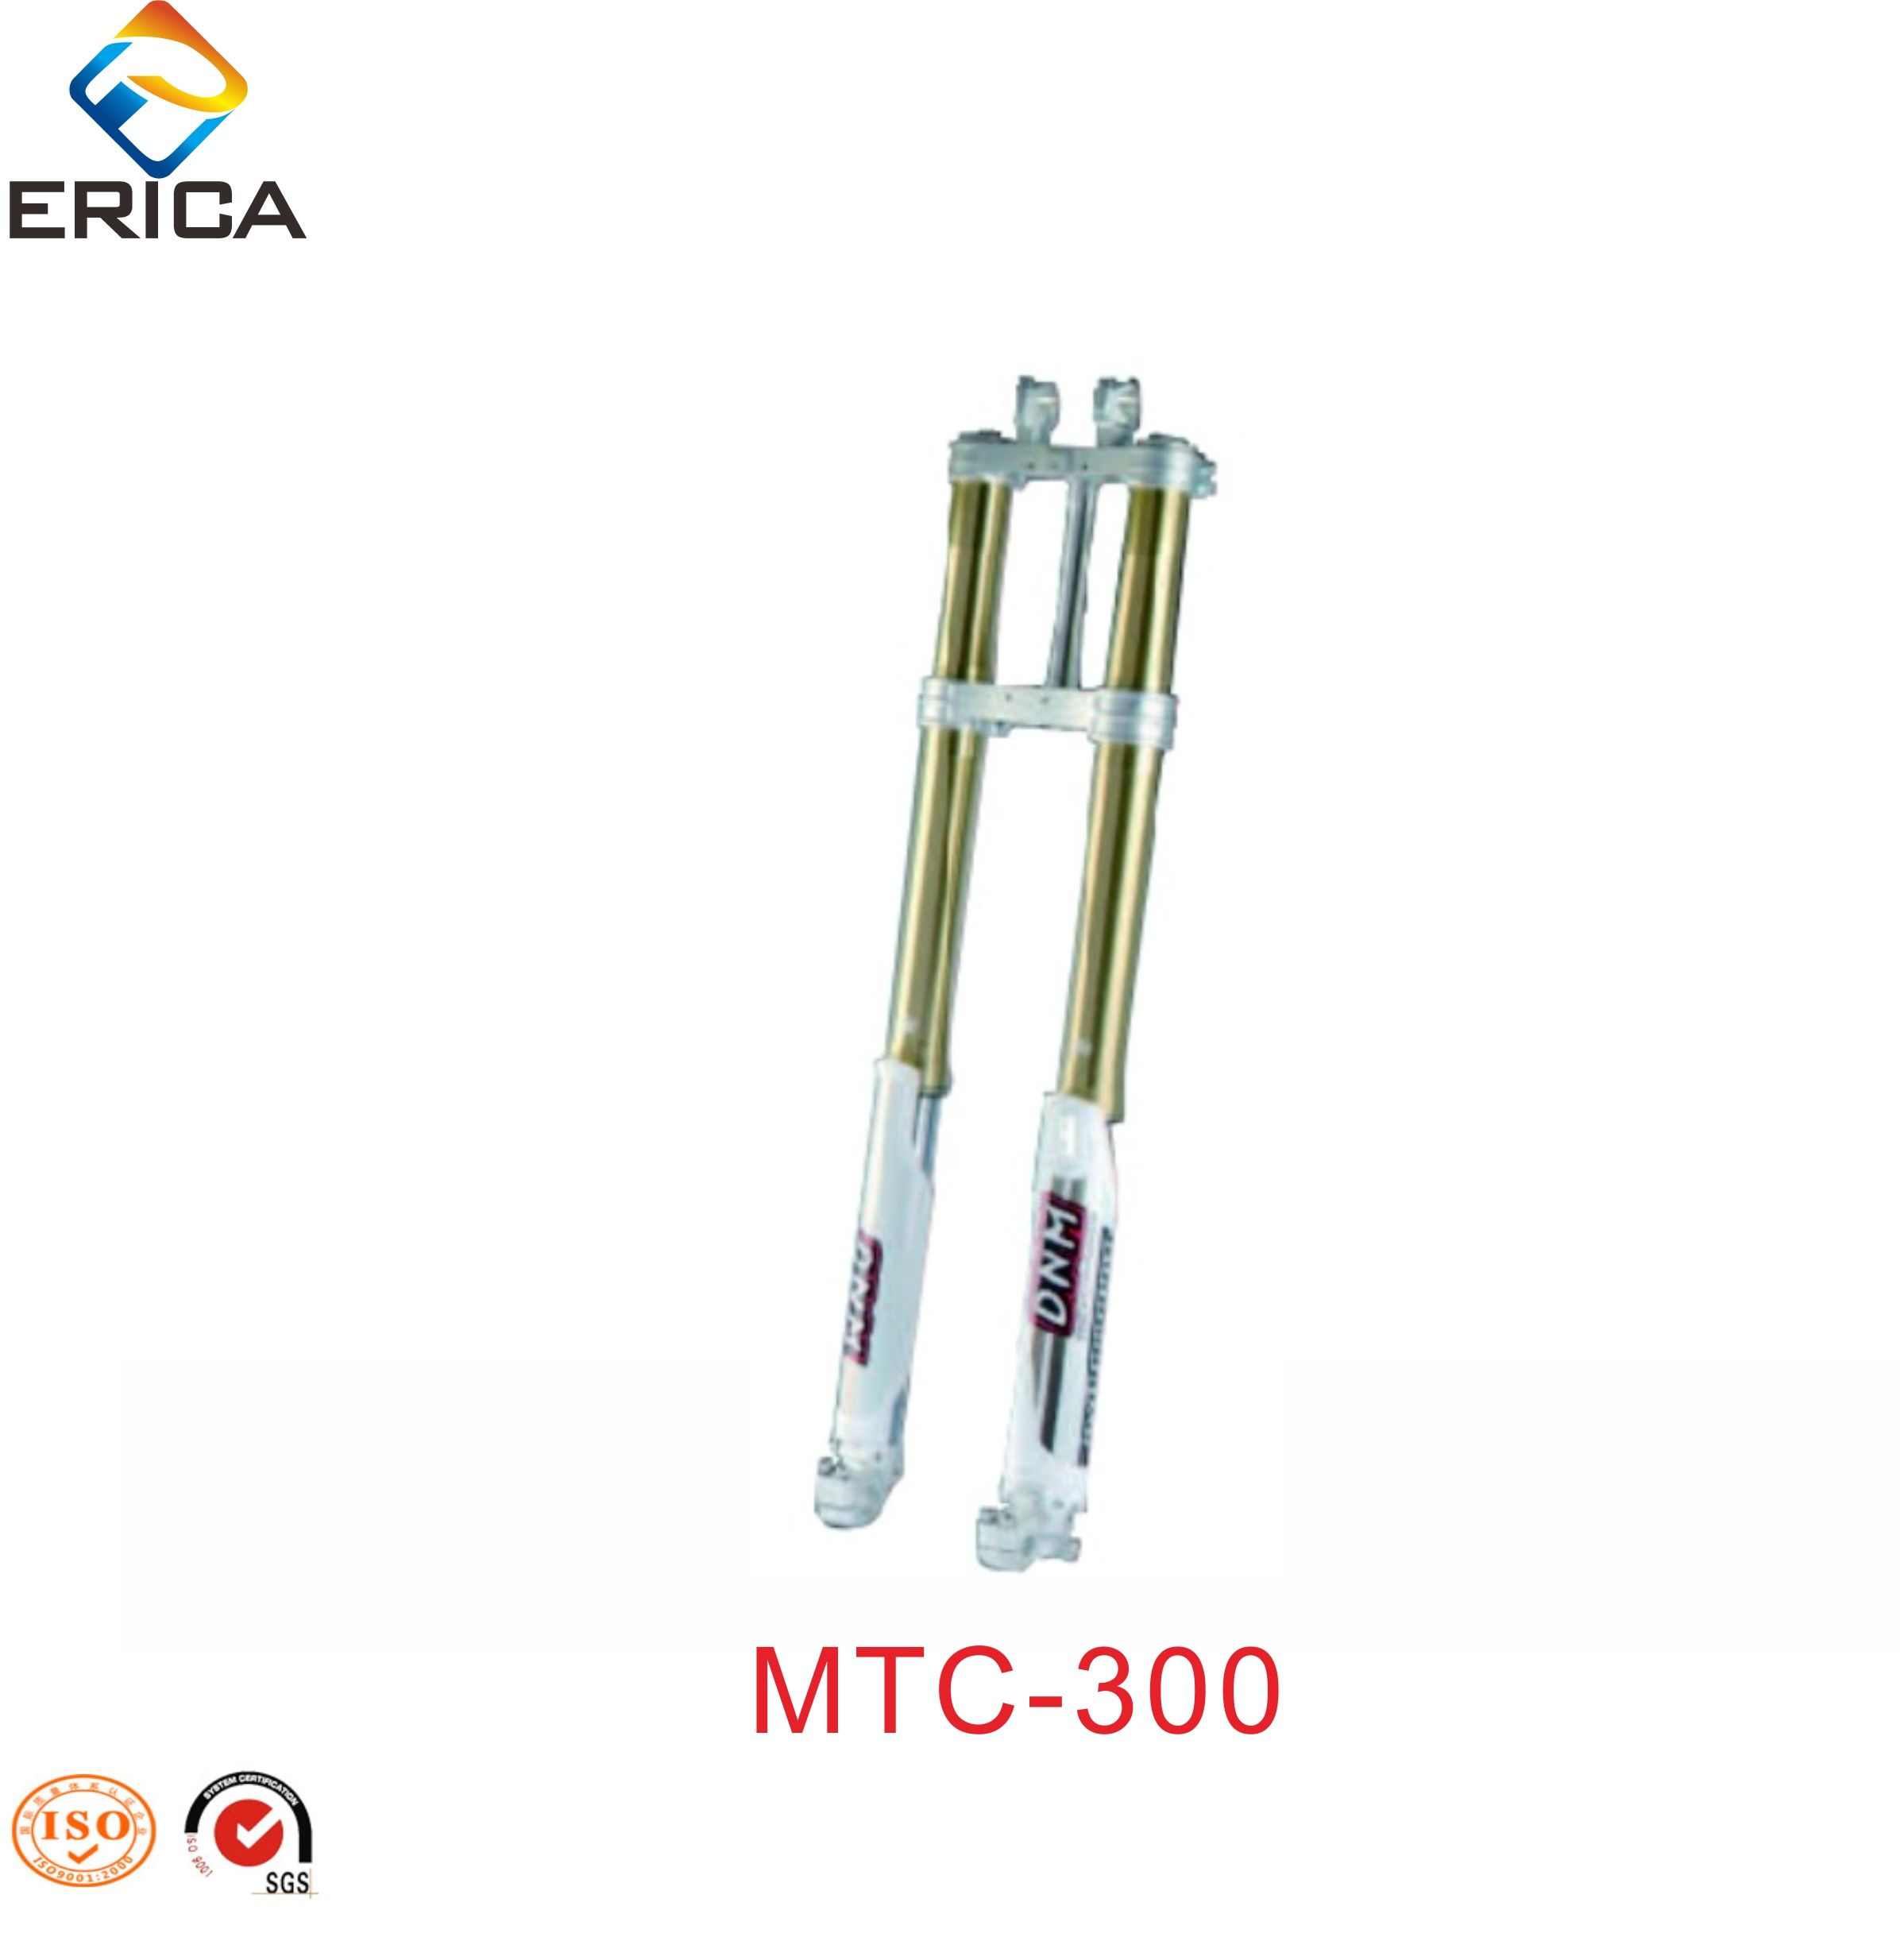 Wholesale High Quality DNM Motocross 305mm Travel Suspension Fork